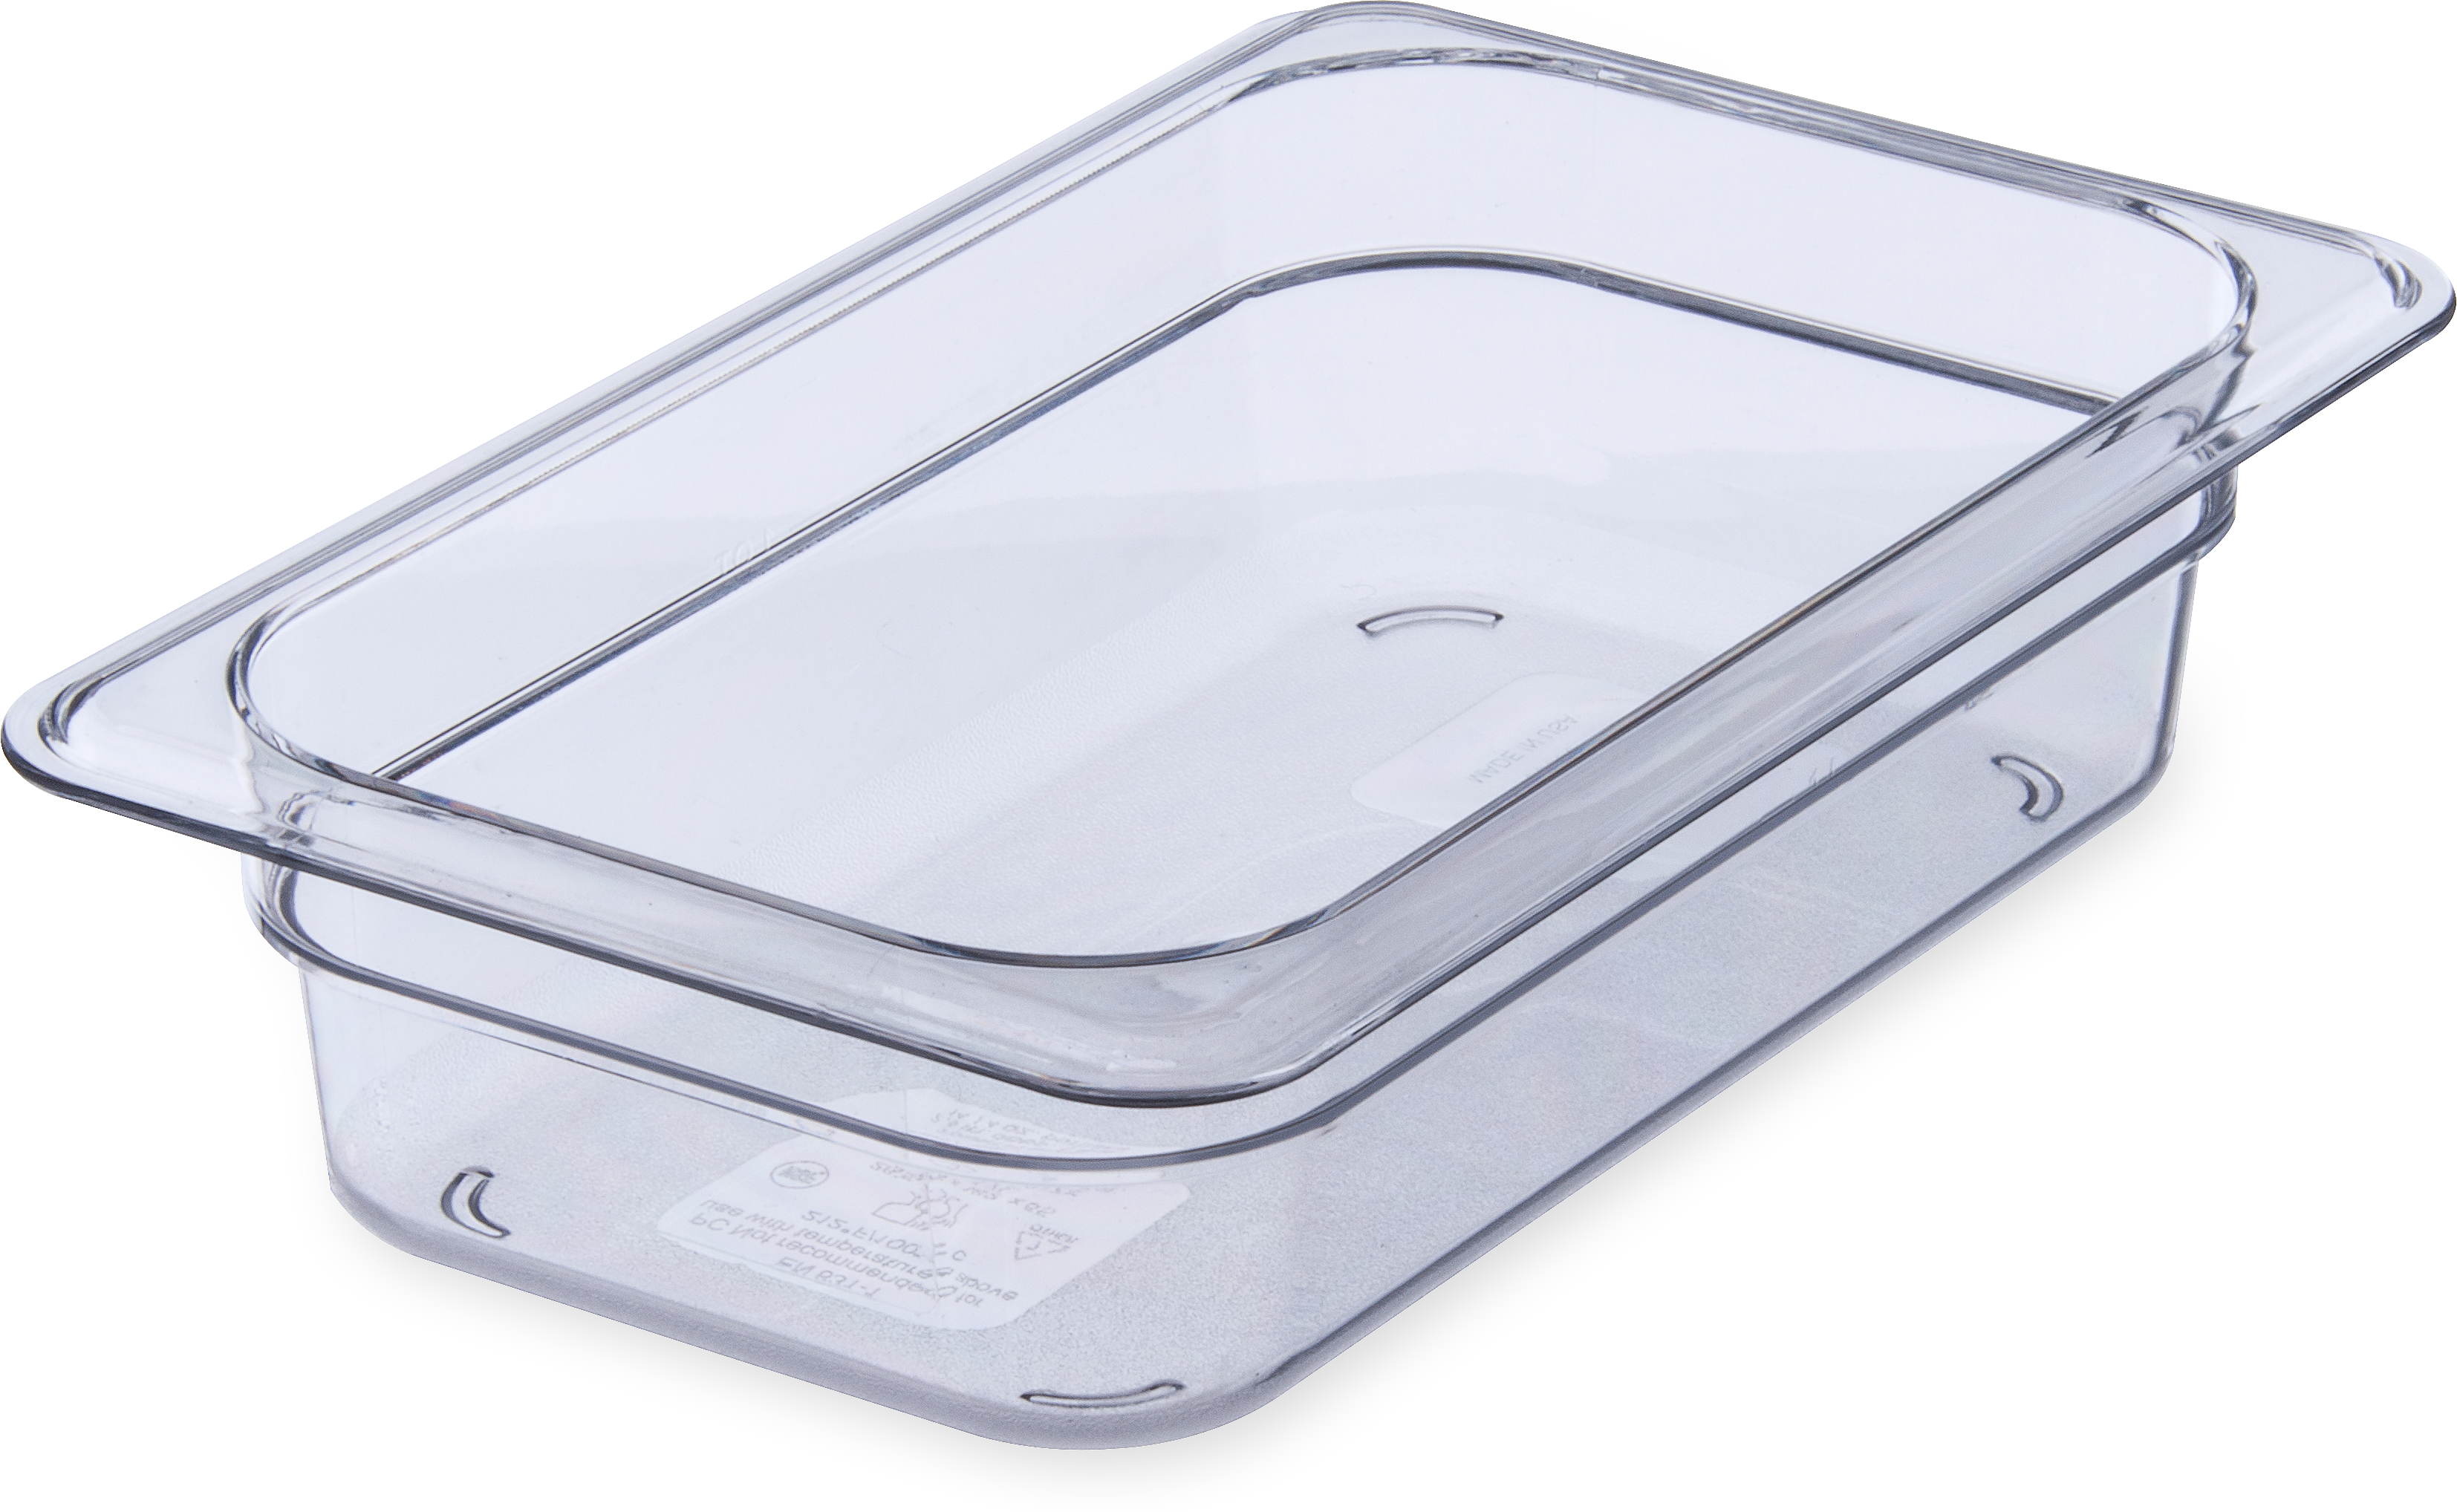 StorPlus Food Pan PC 2.5 DP 1/4 Size - Clear